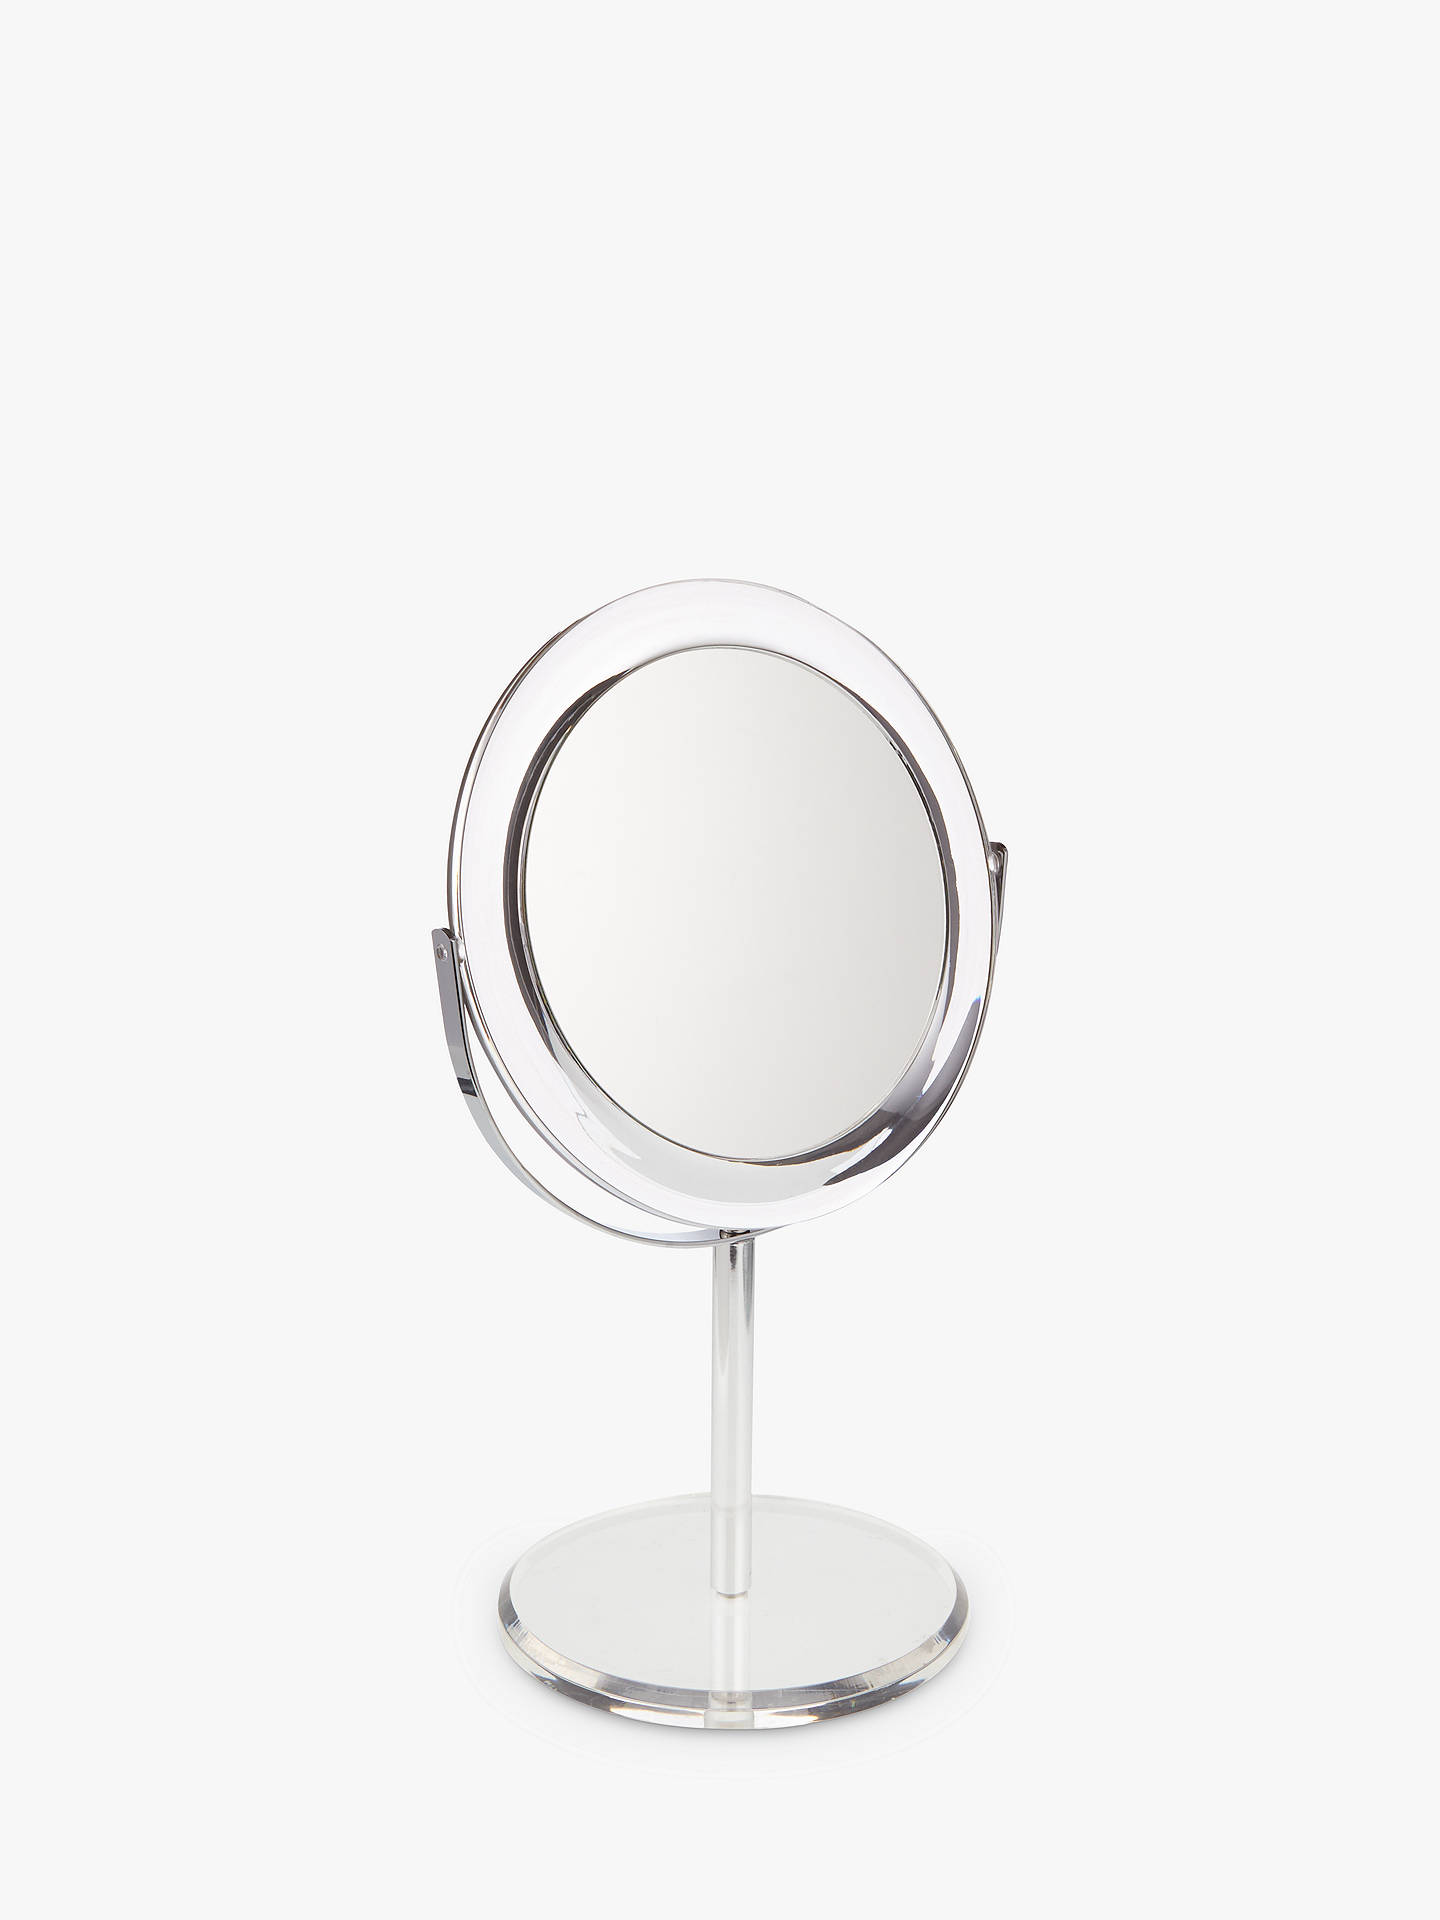 BuyJohn Lewis & Partners Clear Round Acrylic 3 x Magnifying Mirror Online at johnlewis.com